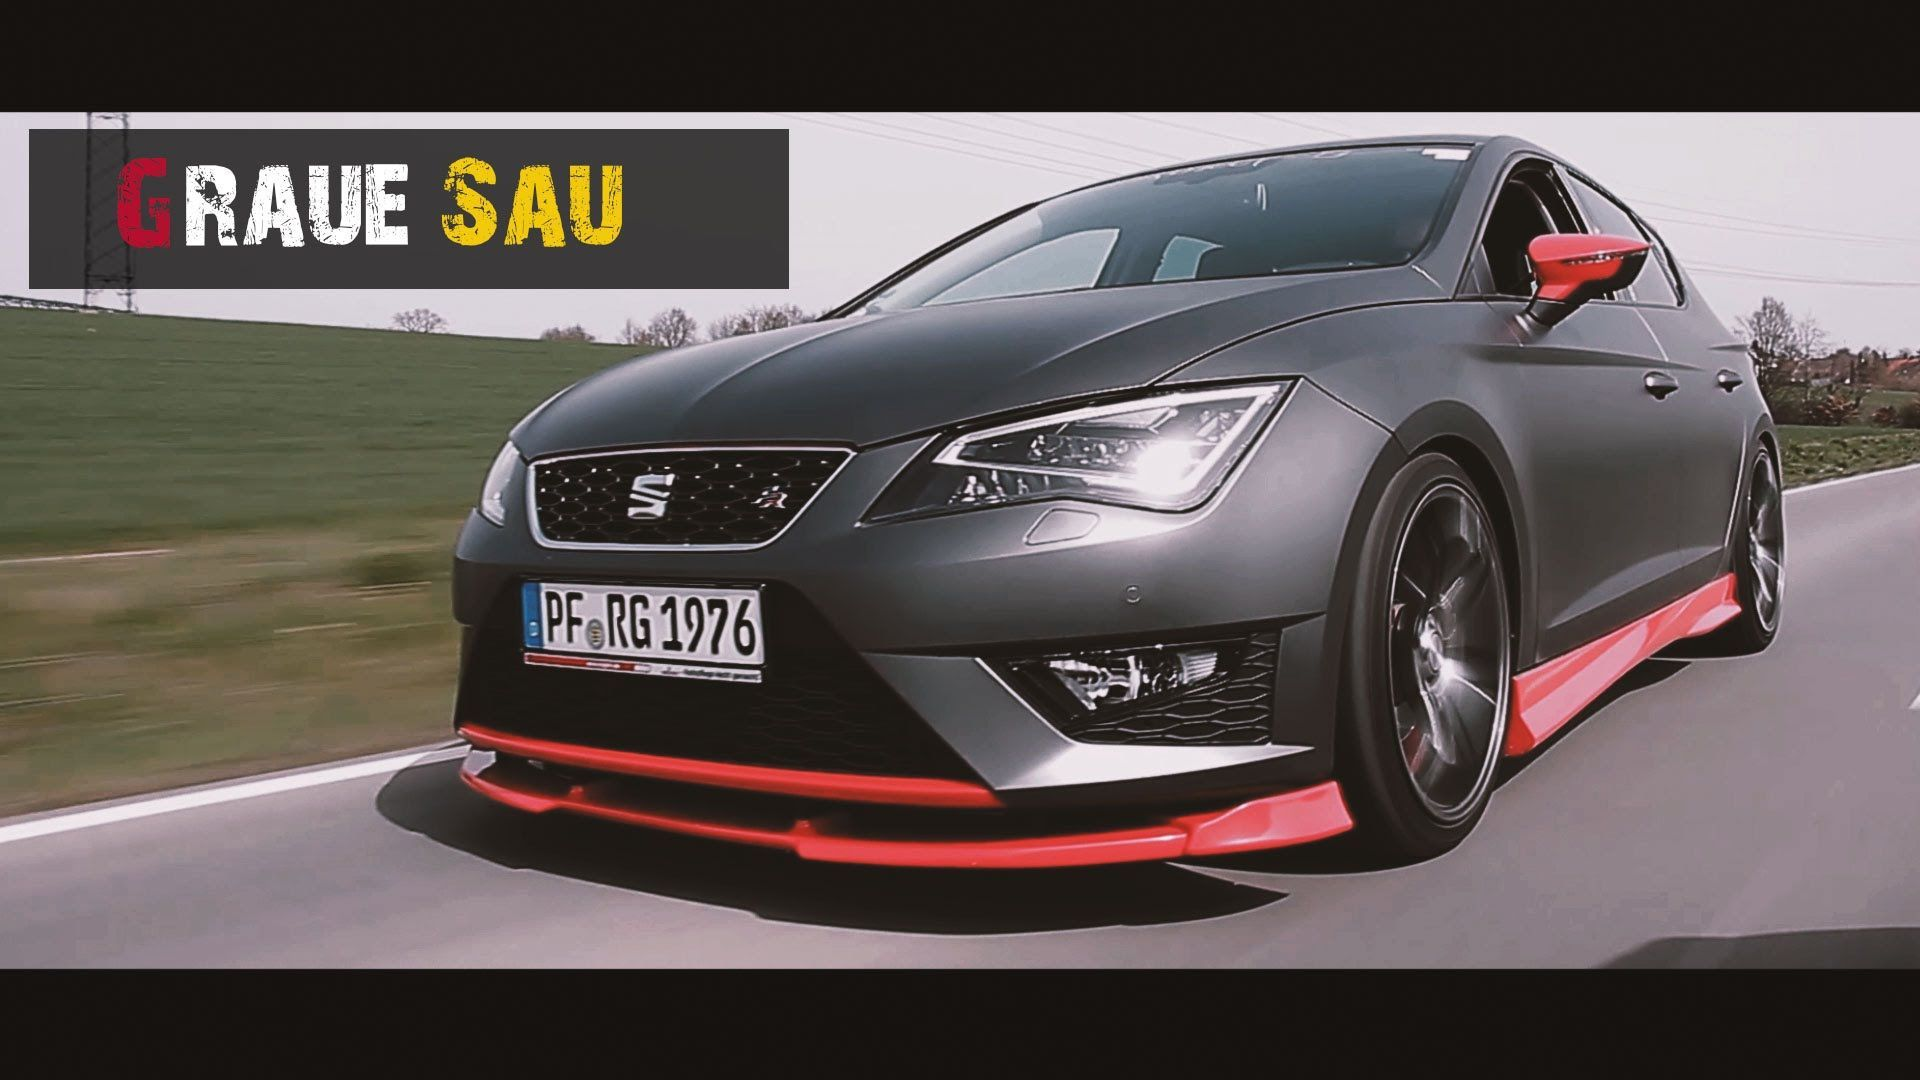 seat leon 5f die graue sau tuning car porn video. Black Bedroom Furniture Sets. Home Design Ideas